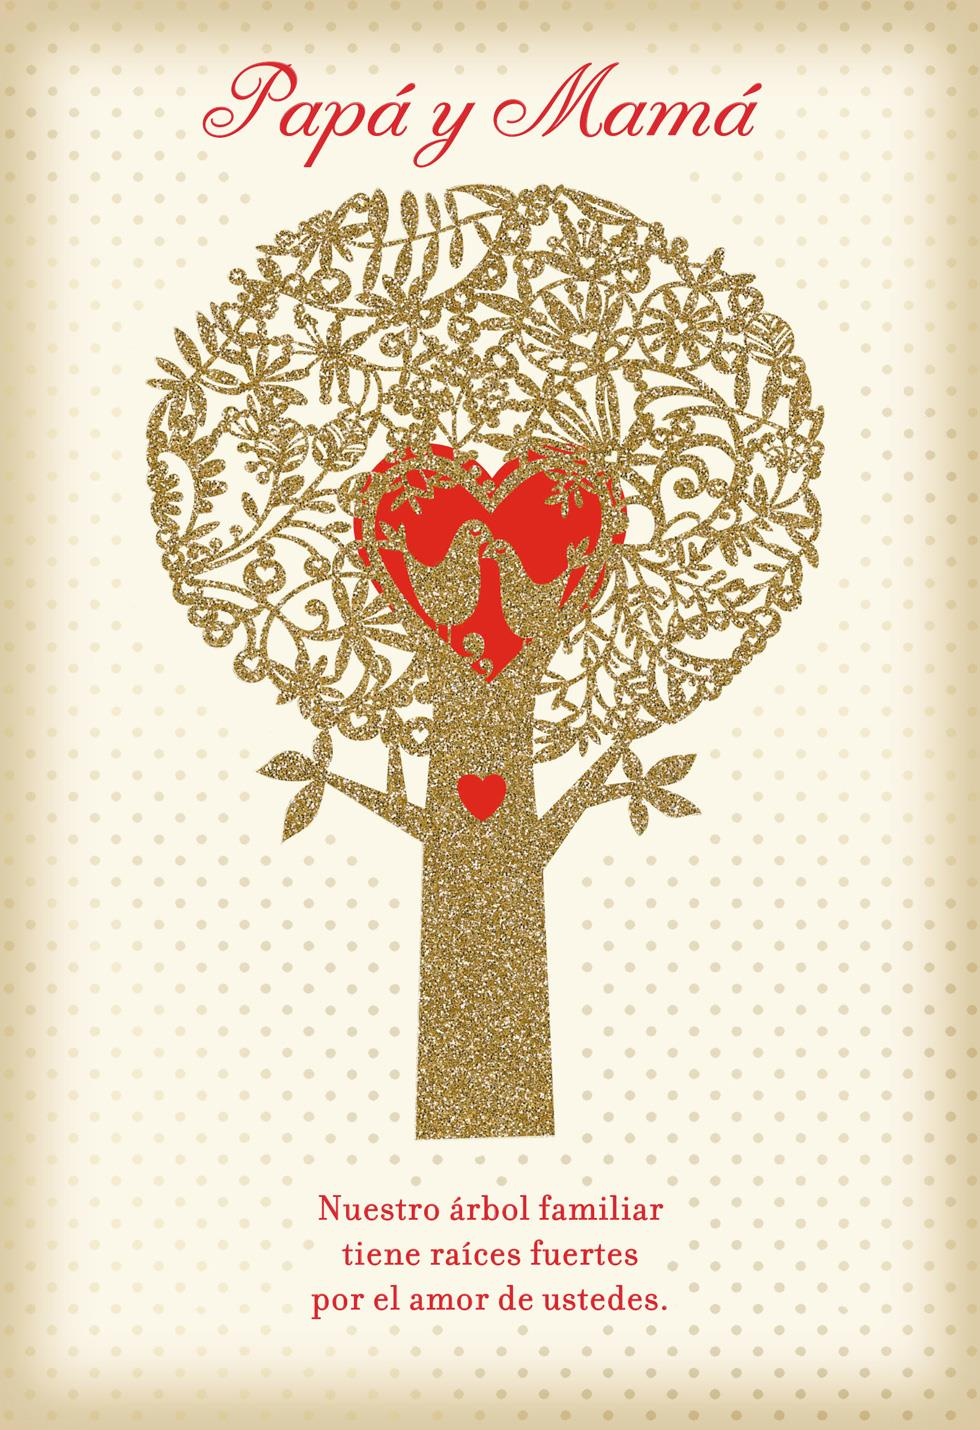 Family Tree Spanish Language Valentines Day Card For